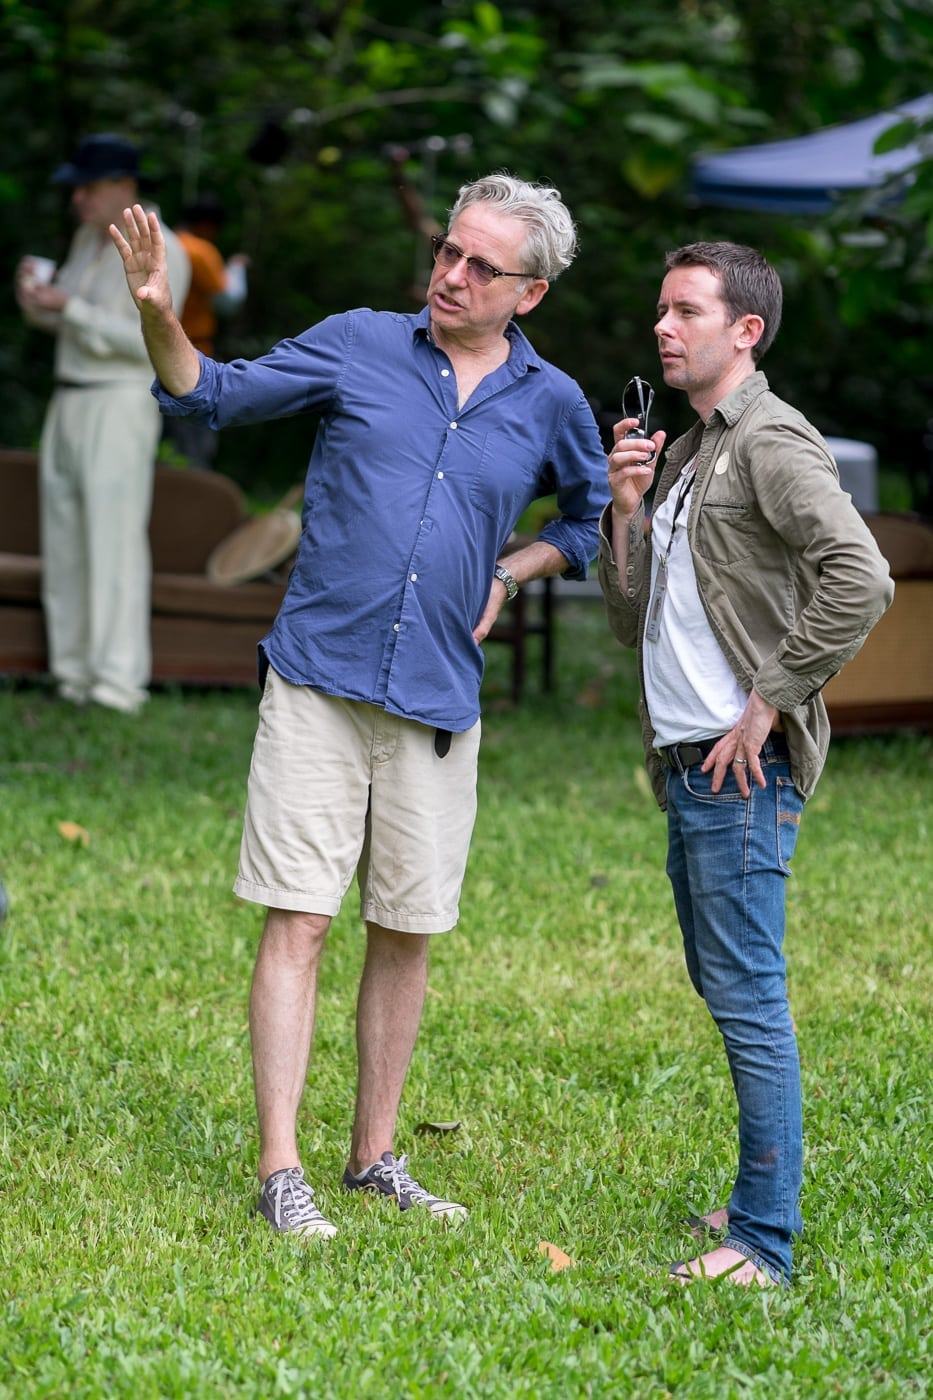 Director John Alexander and Producer Dan Winch discuss the day's shoot.